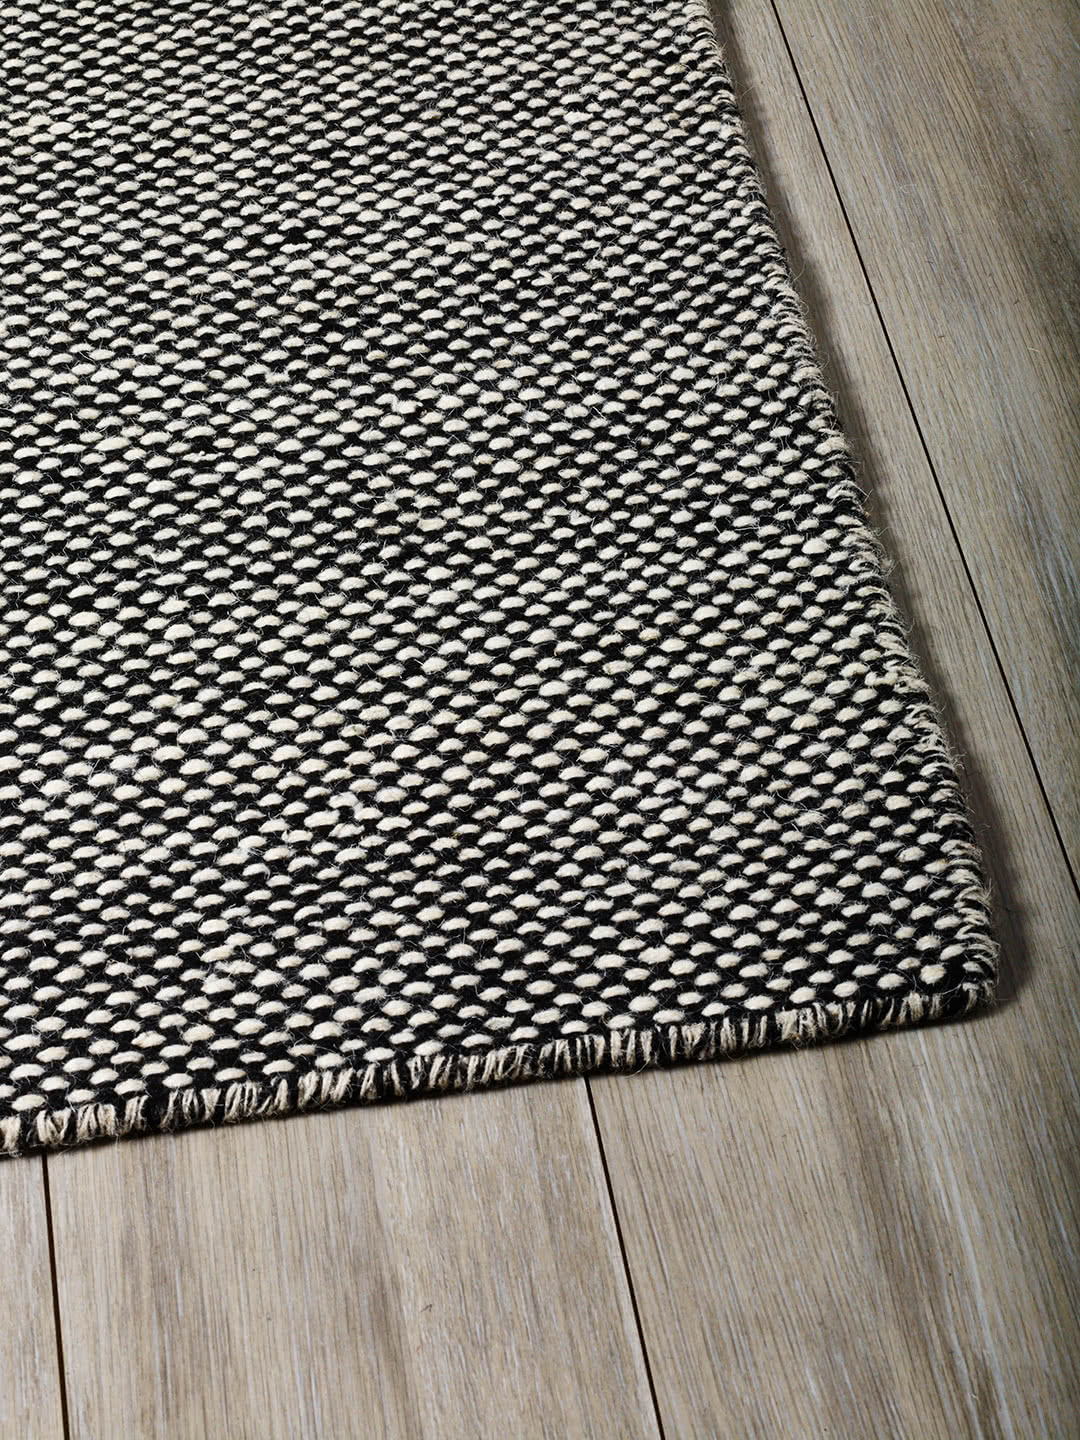 Black Beige pure wool rugs Perth